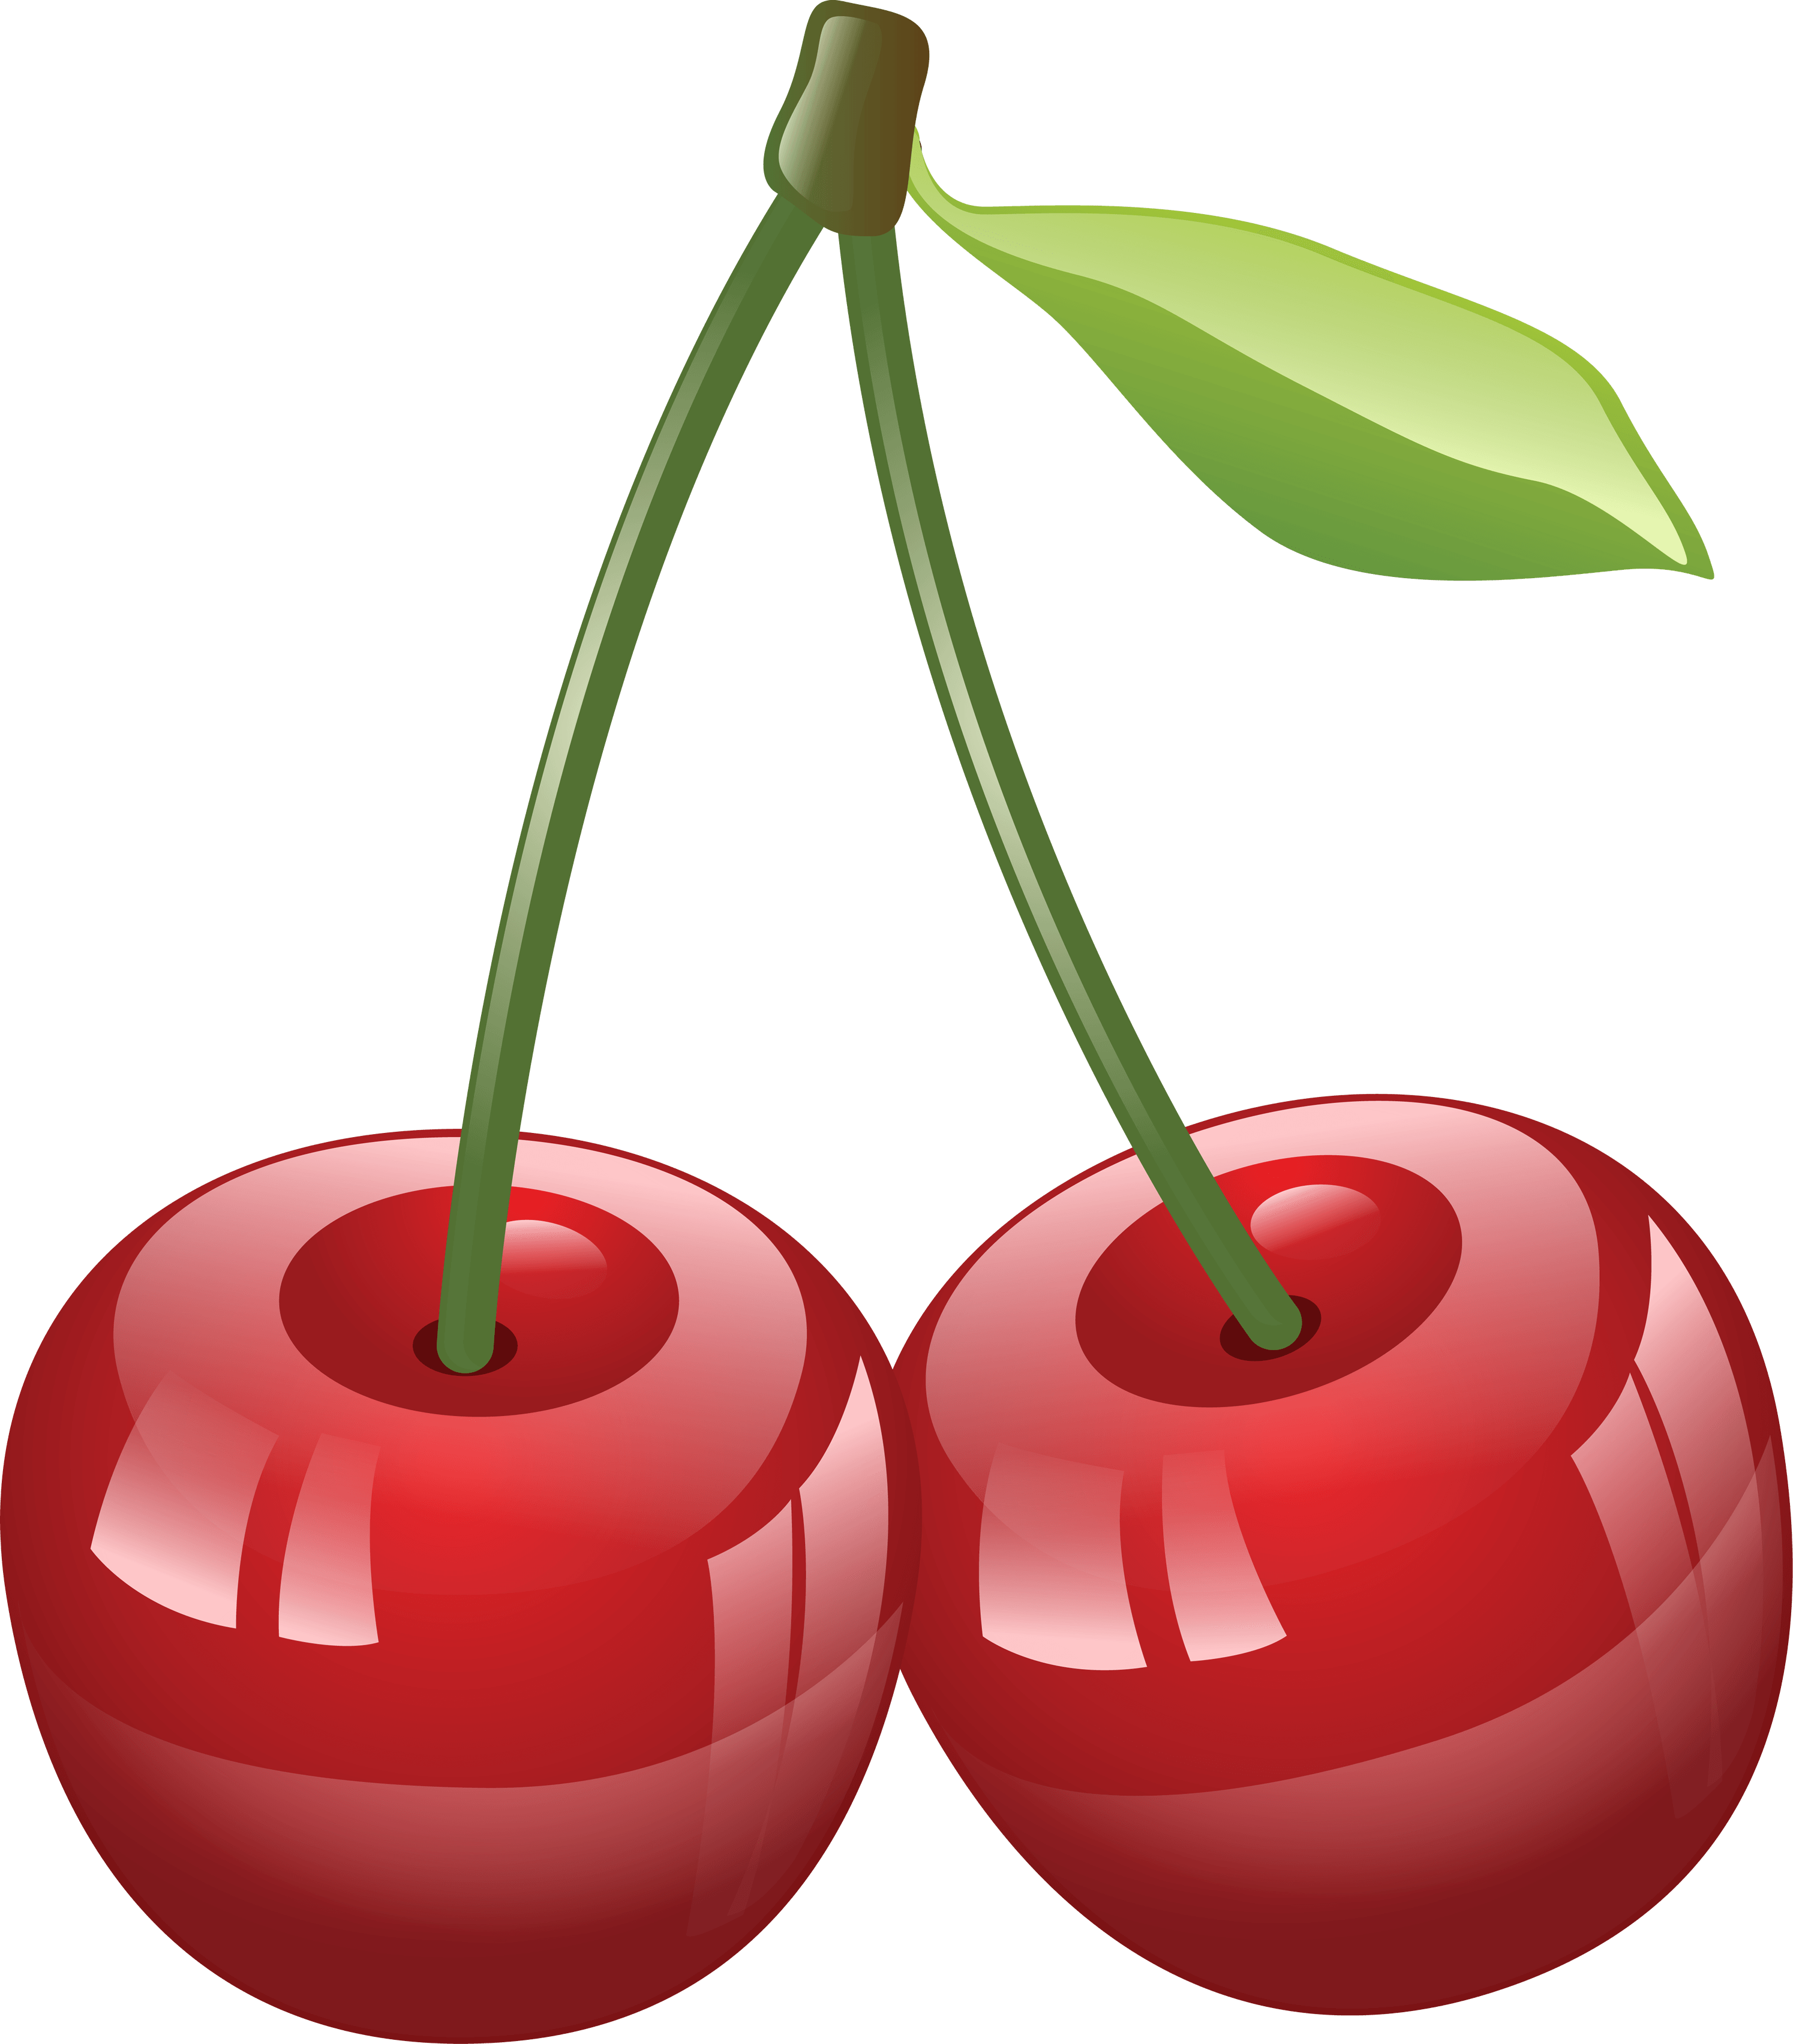 Cherry Png Image PNG Image